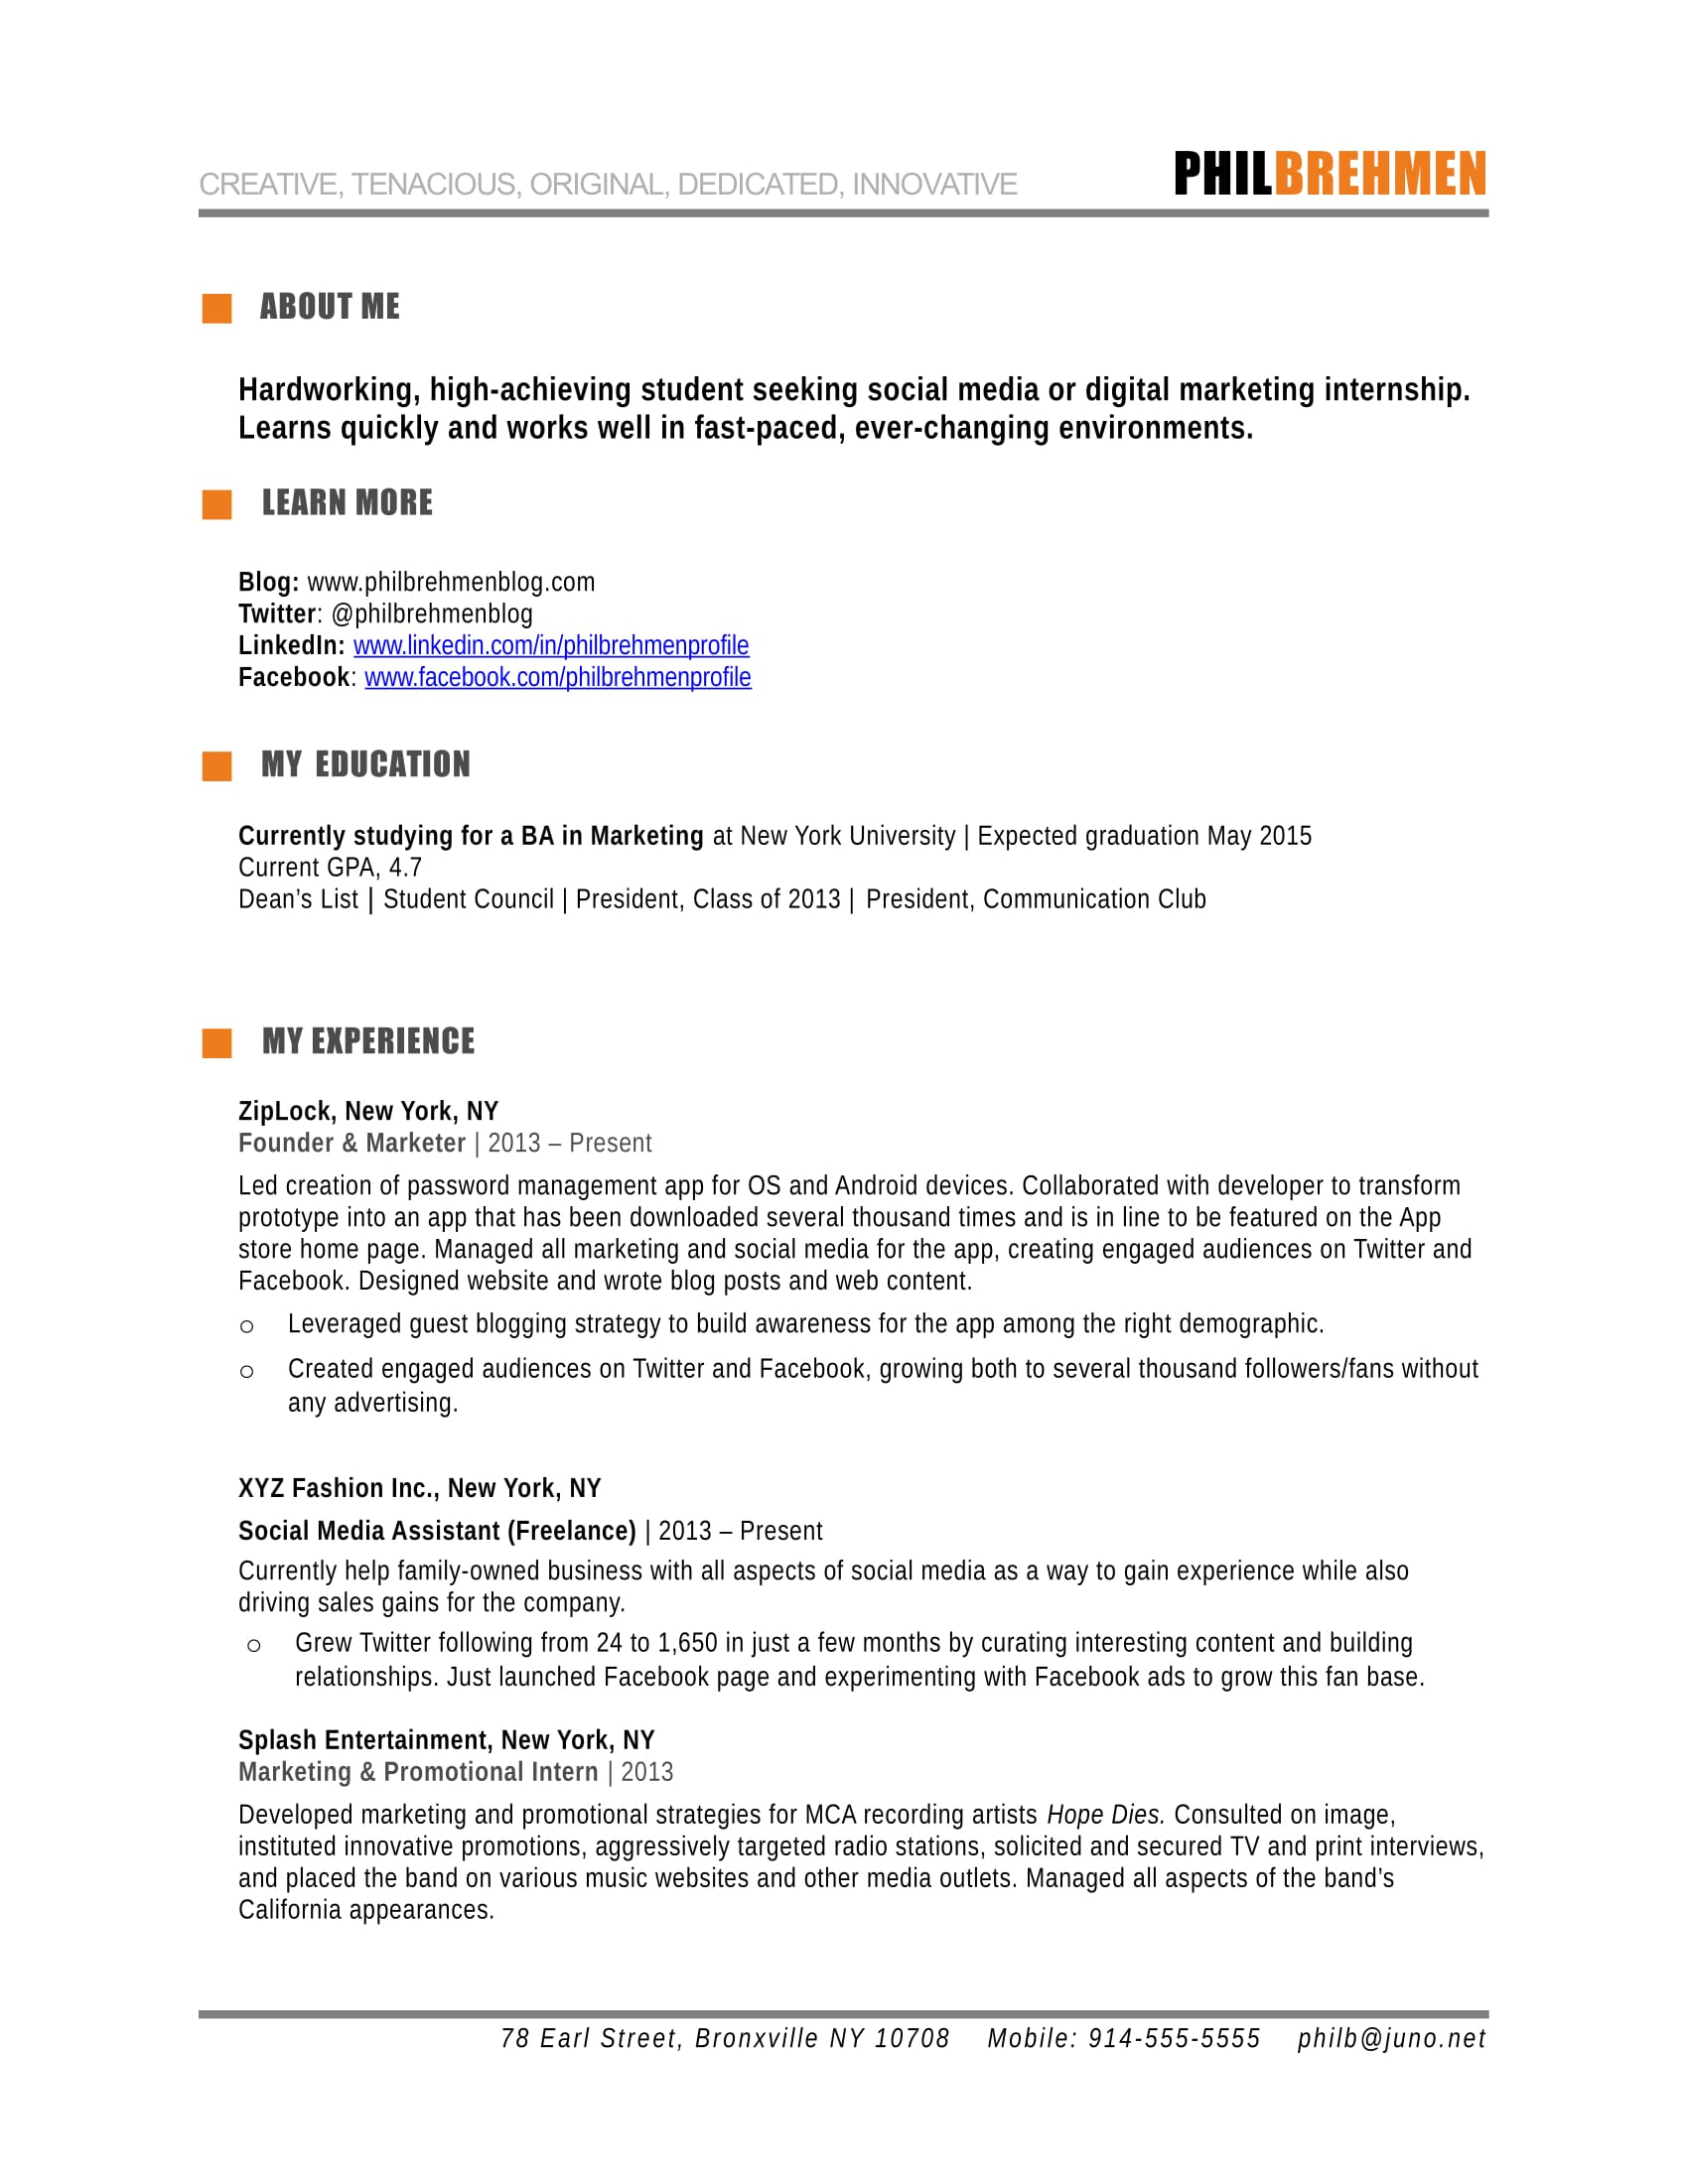 Inbound_Marketing_Intern_1 1  Digital Strategist Resume